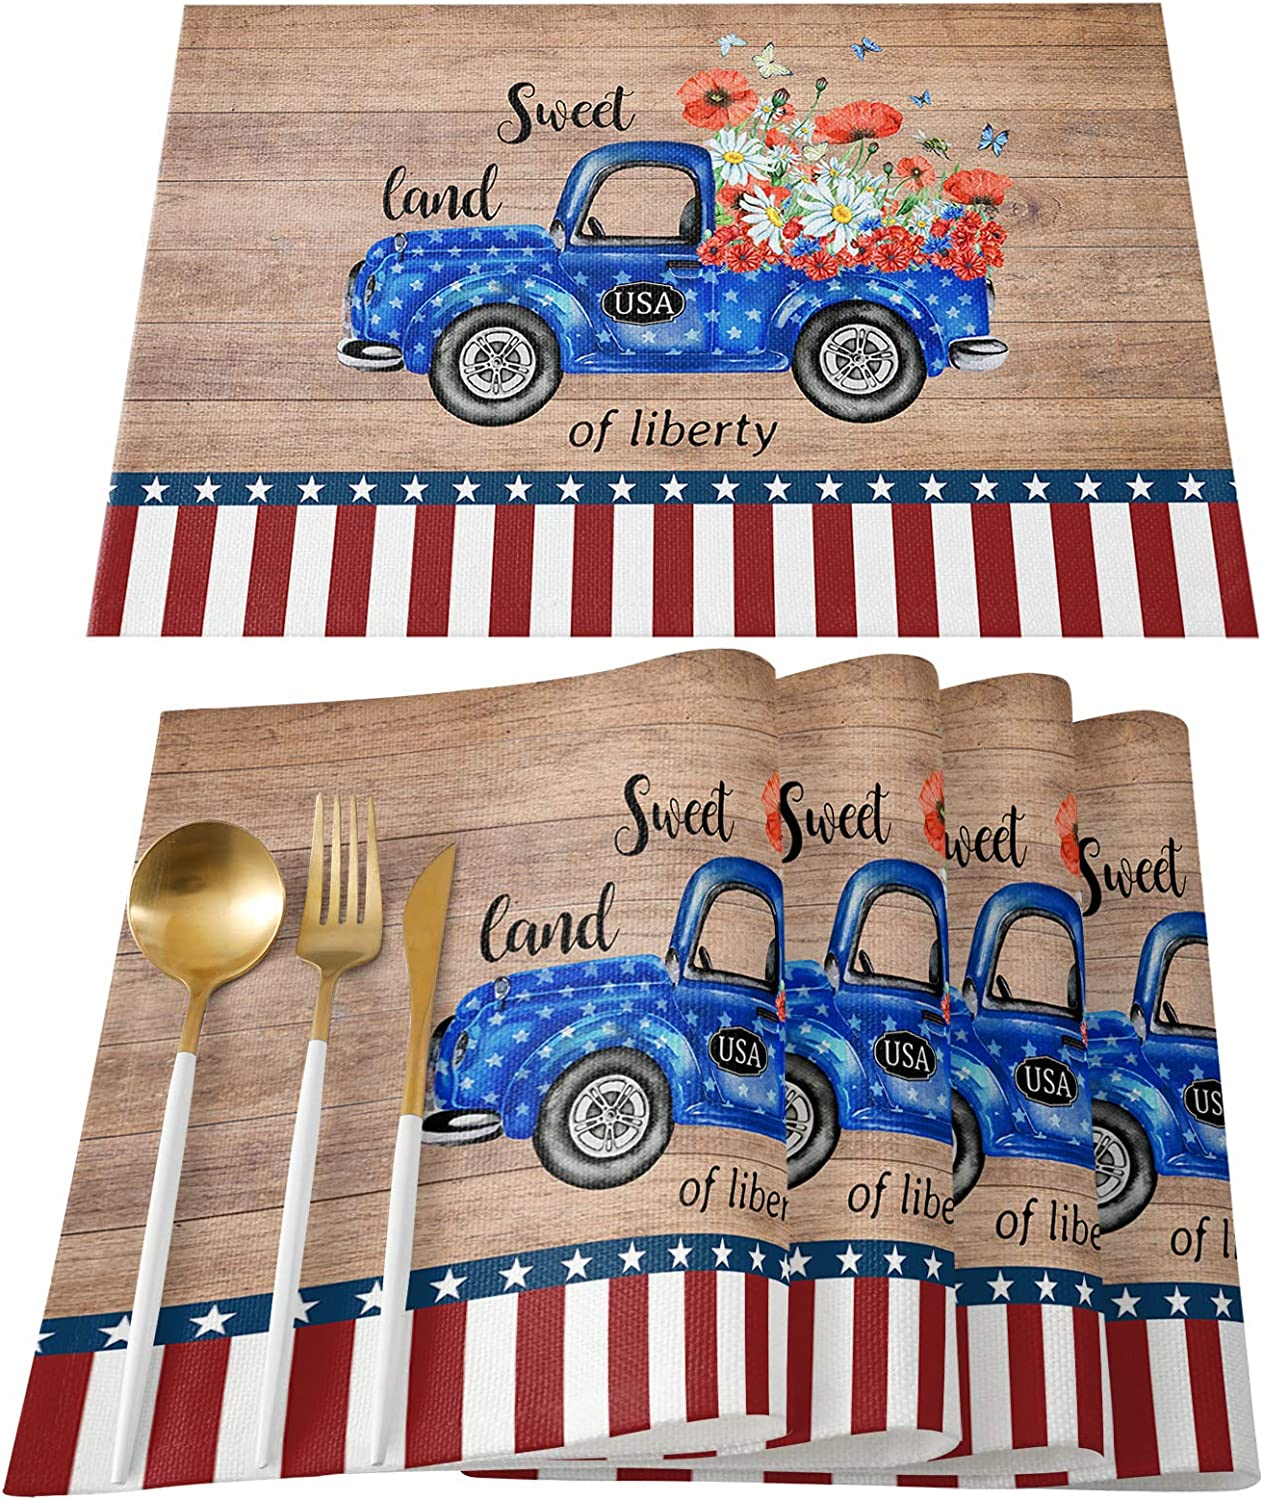 LBCASA Placemats Set of 6 USA Place Tucson 35% OFF Mall Truck Flower Butterfly with